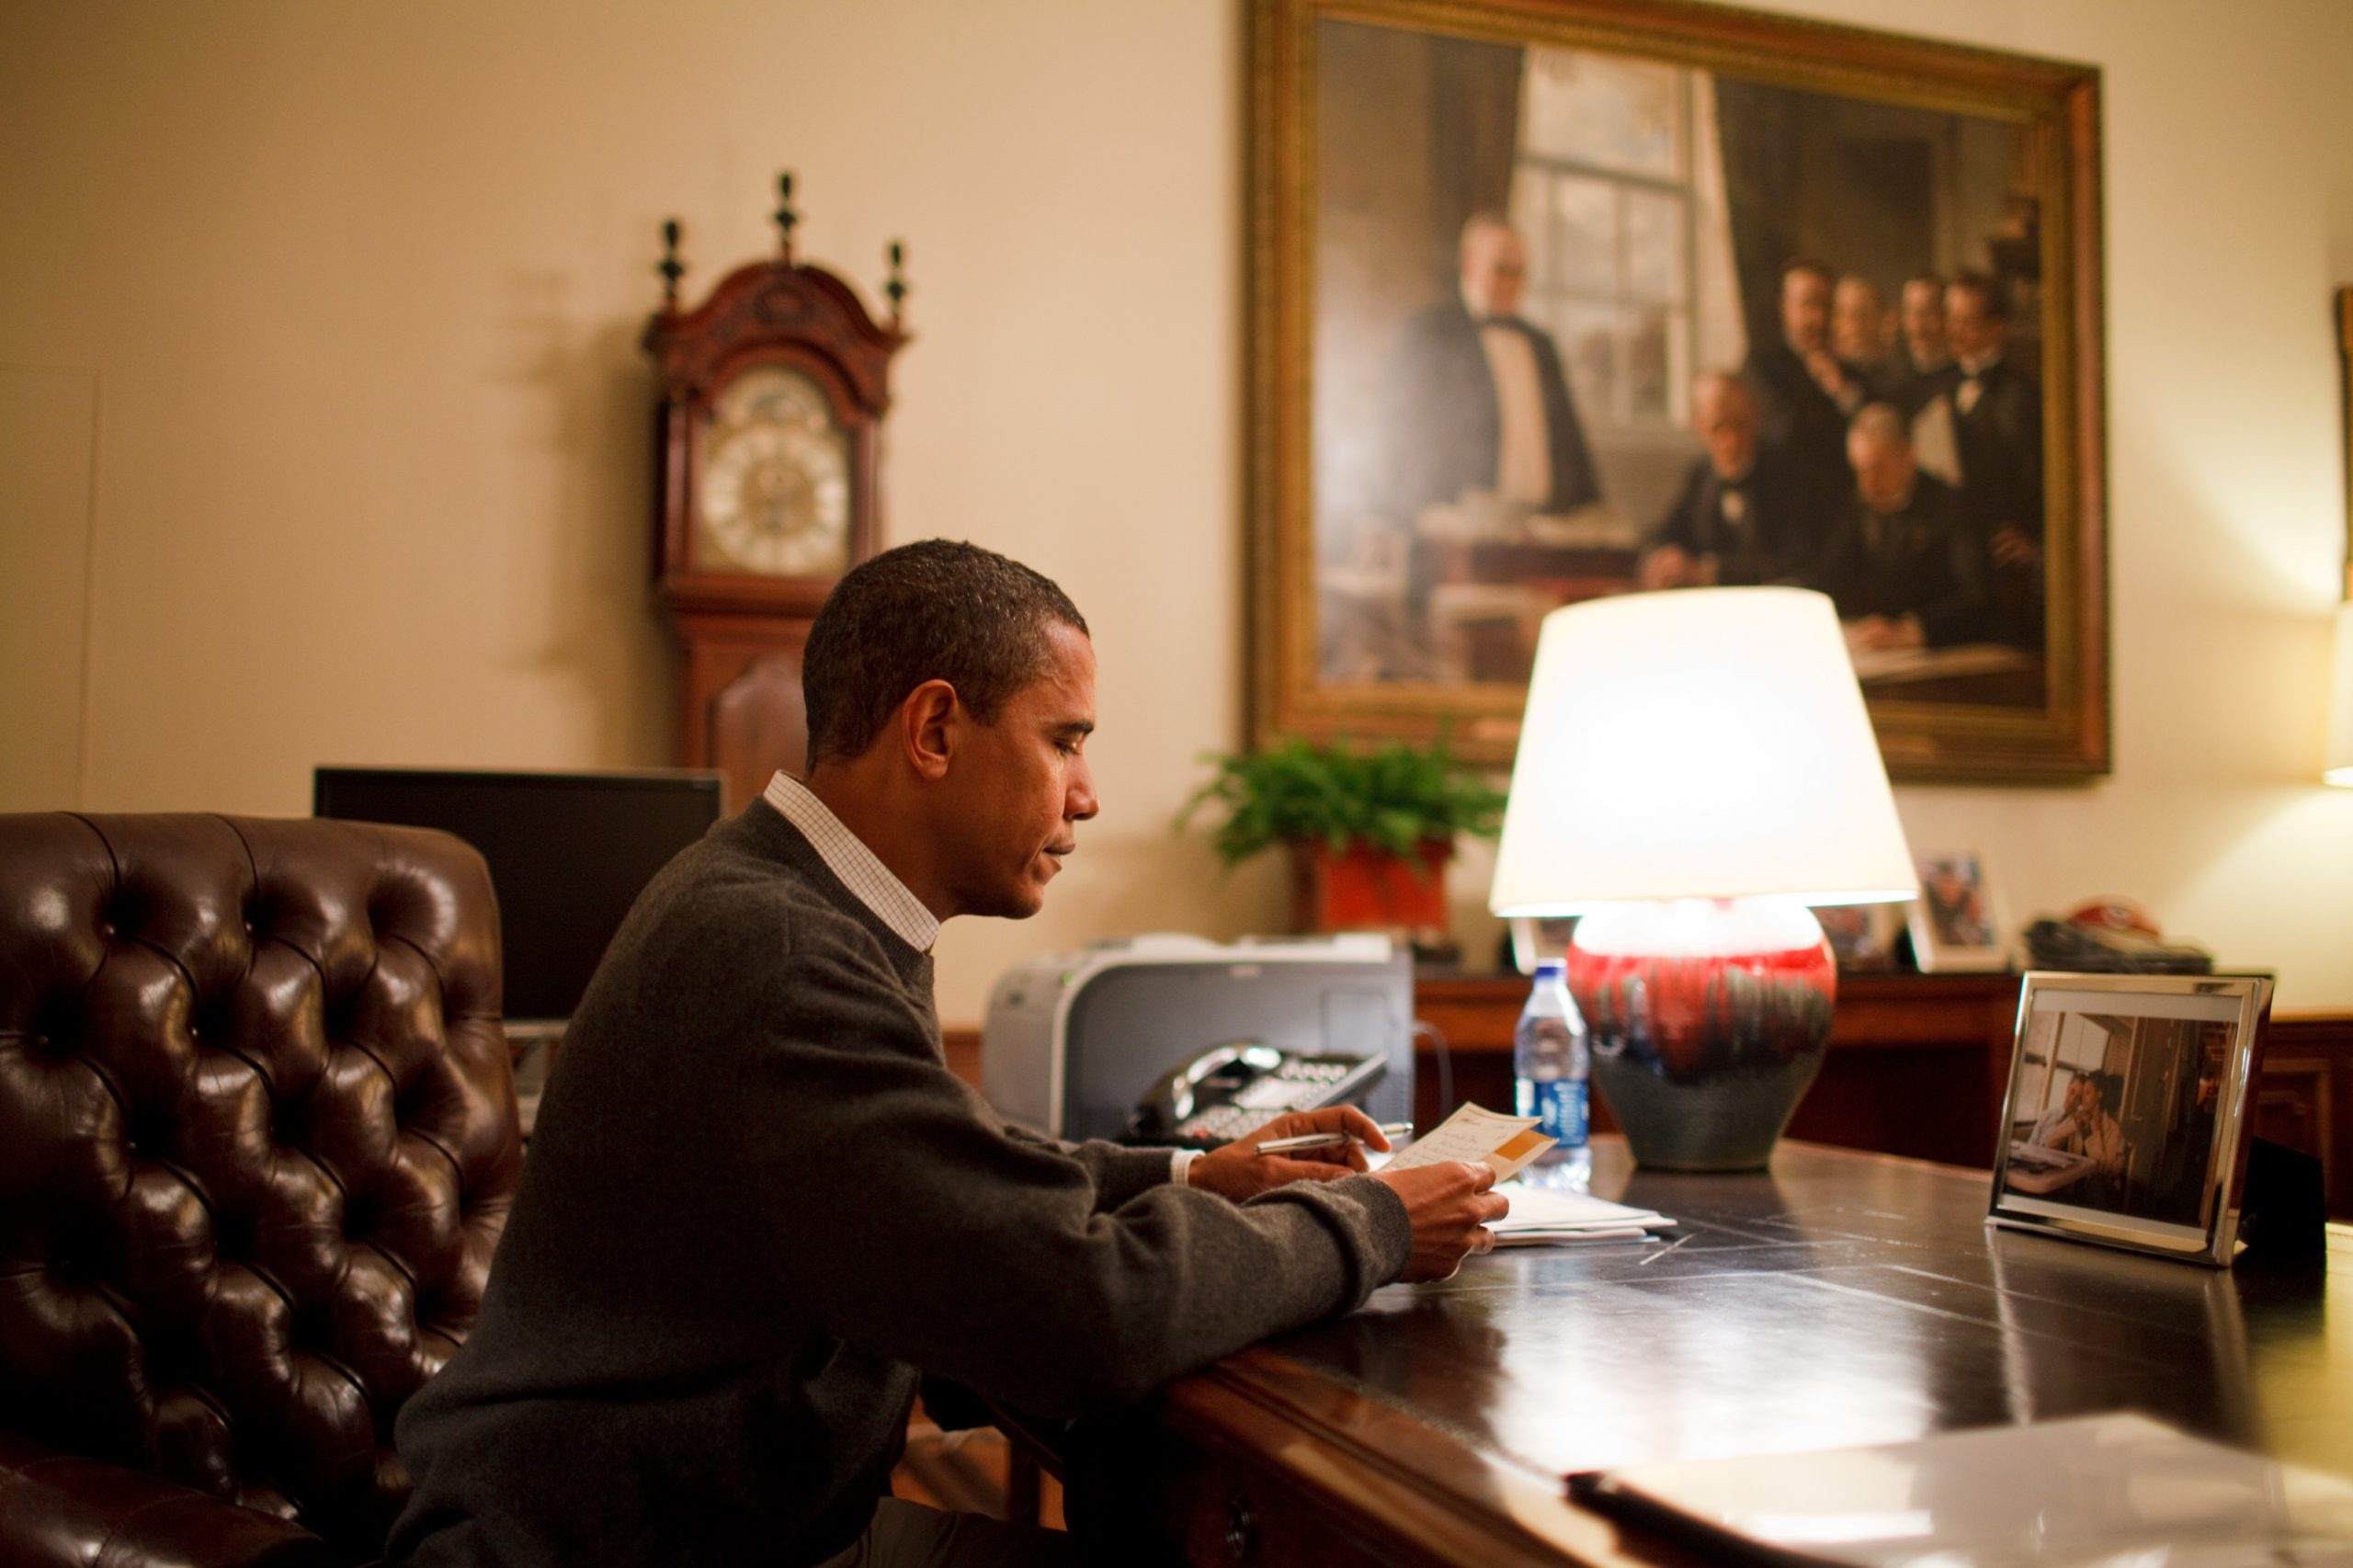 Barack Obama reads letters from citizens. White House photo by Pete Souza